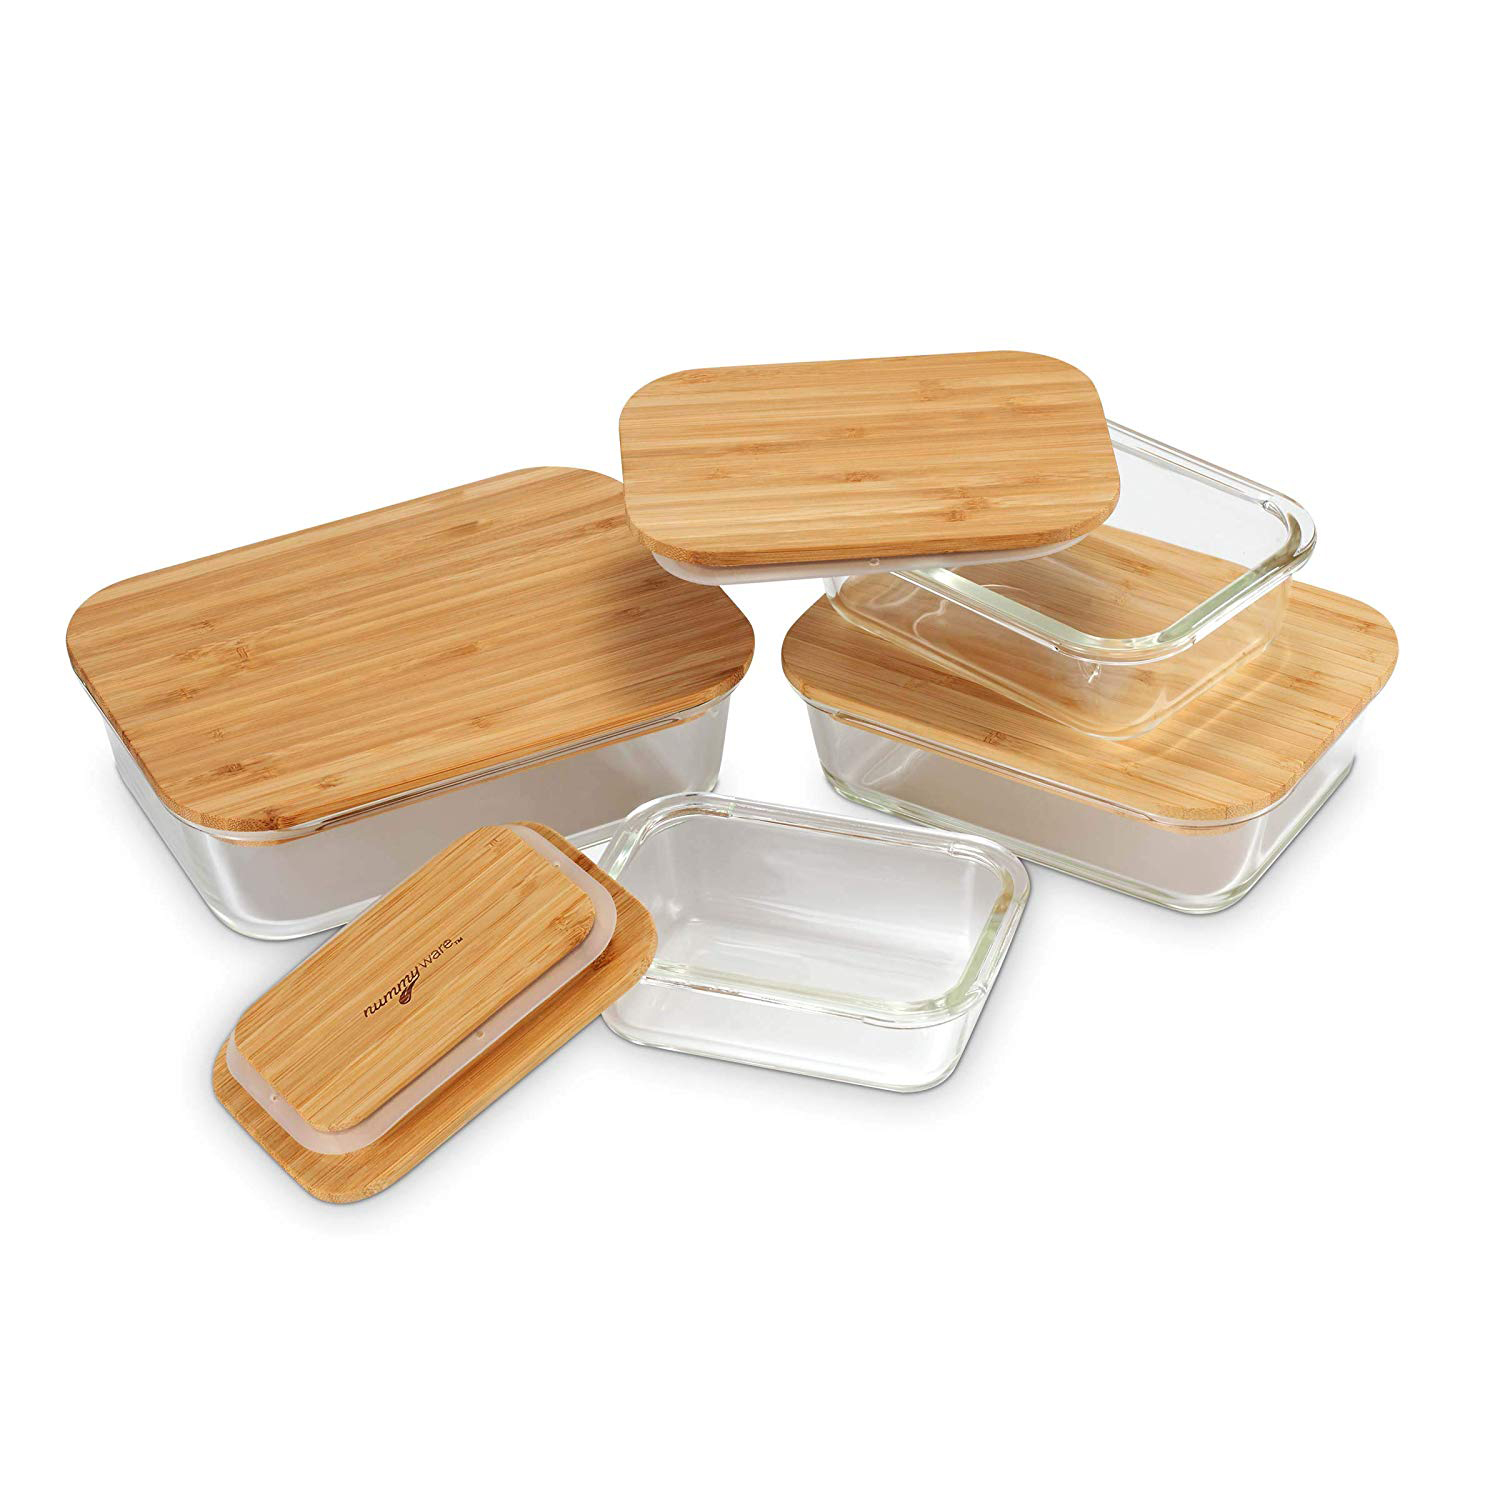 4 different sized glass containers with wooden lids